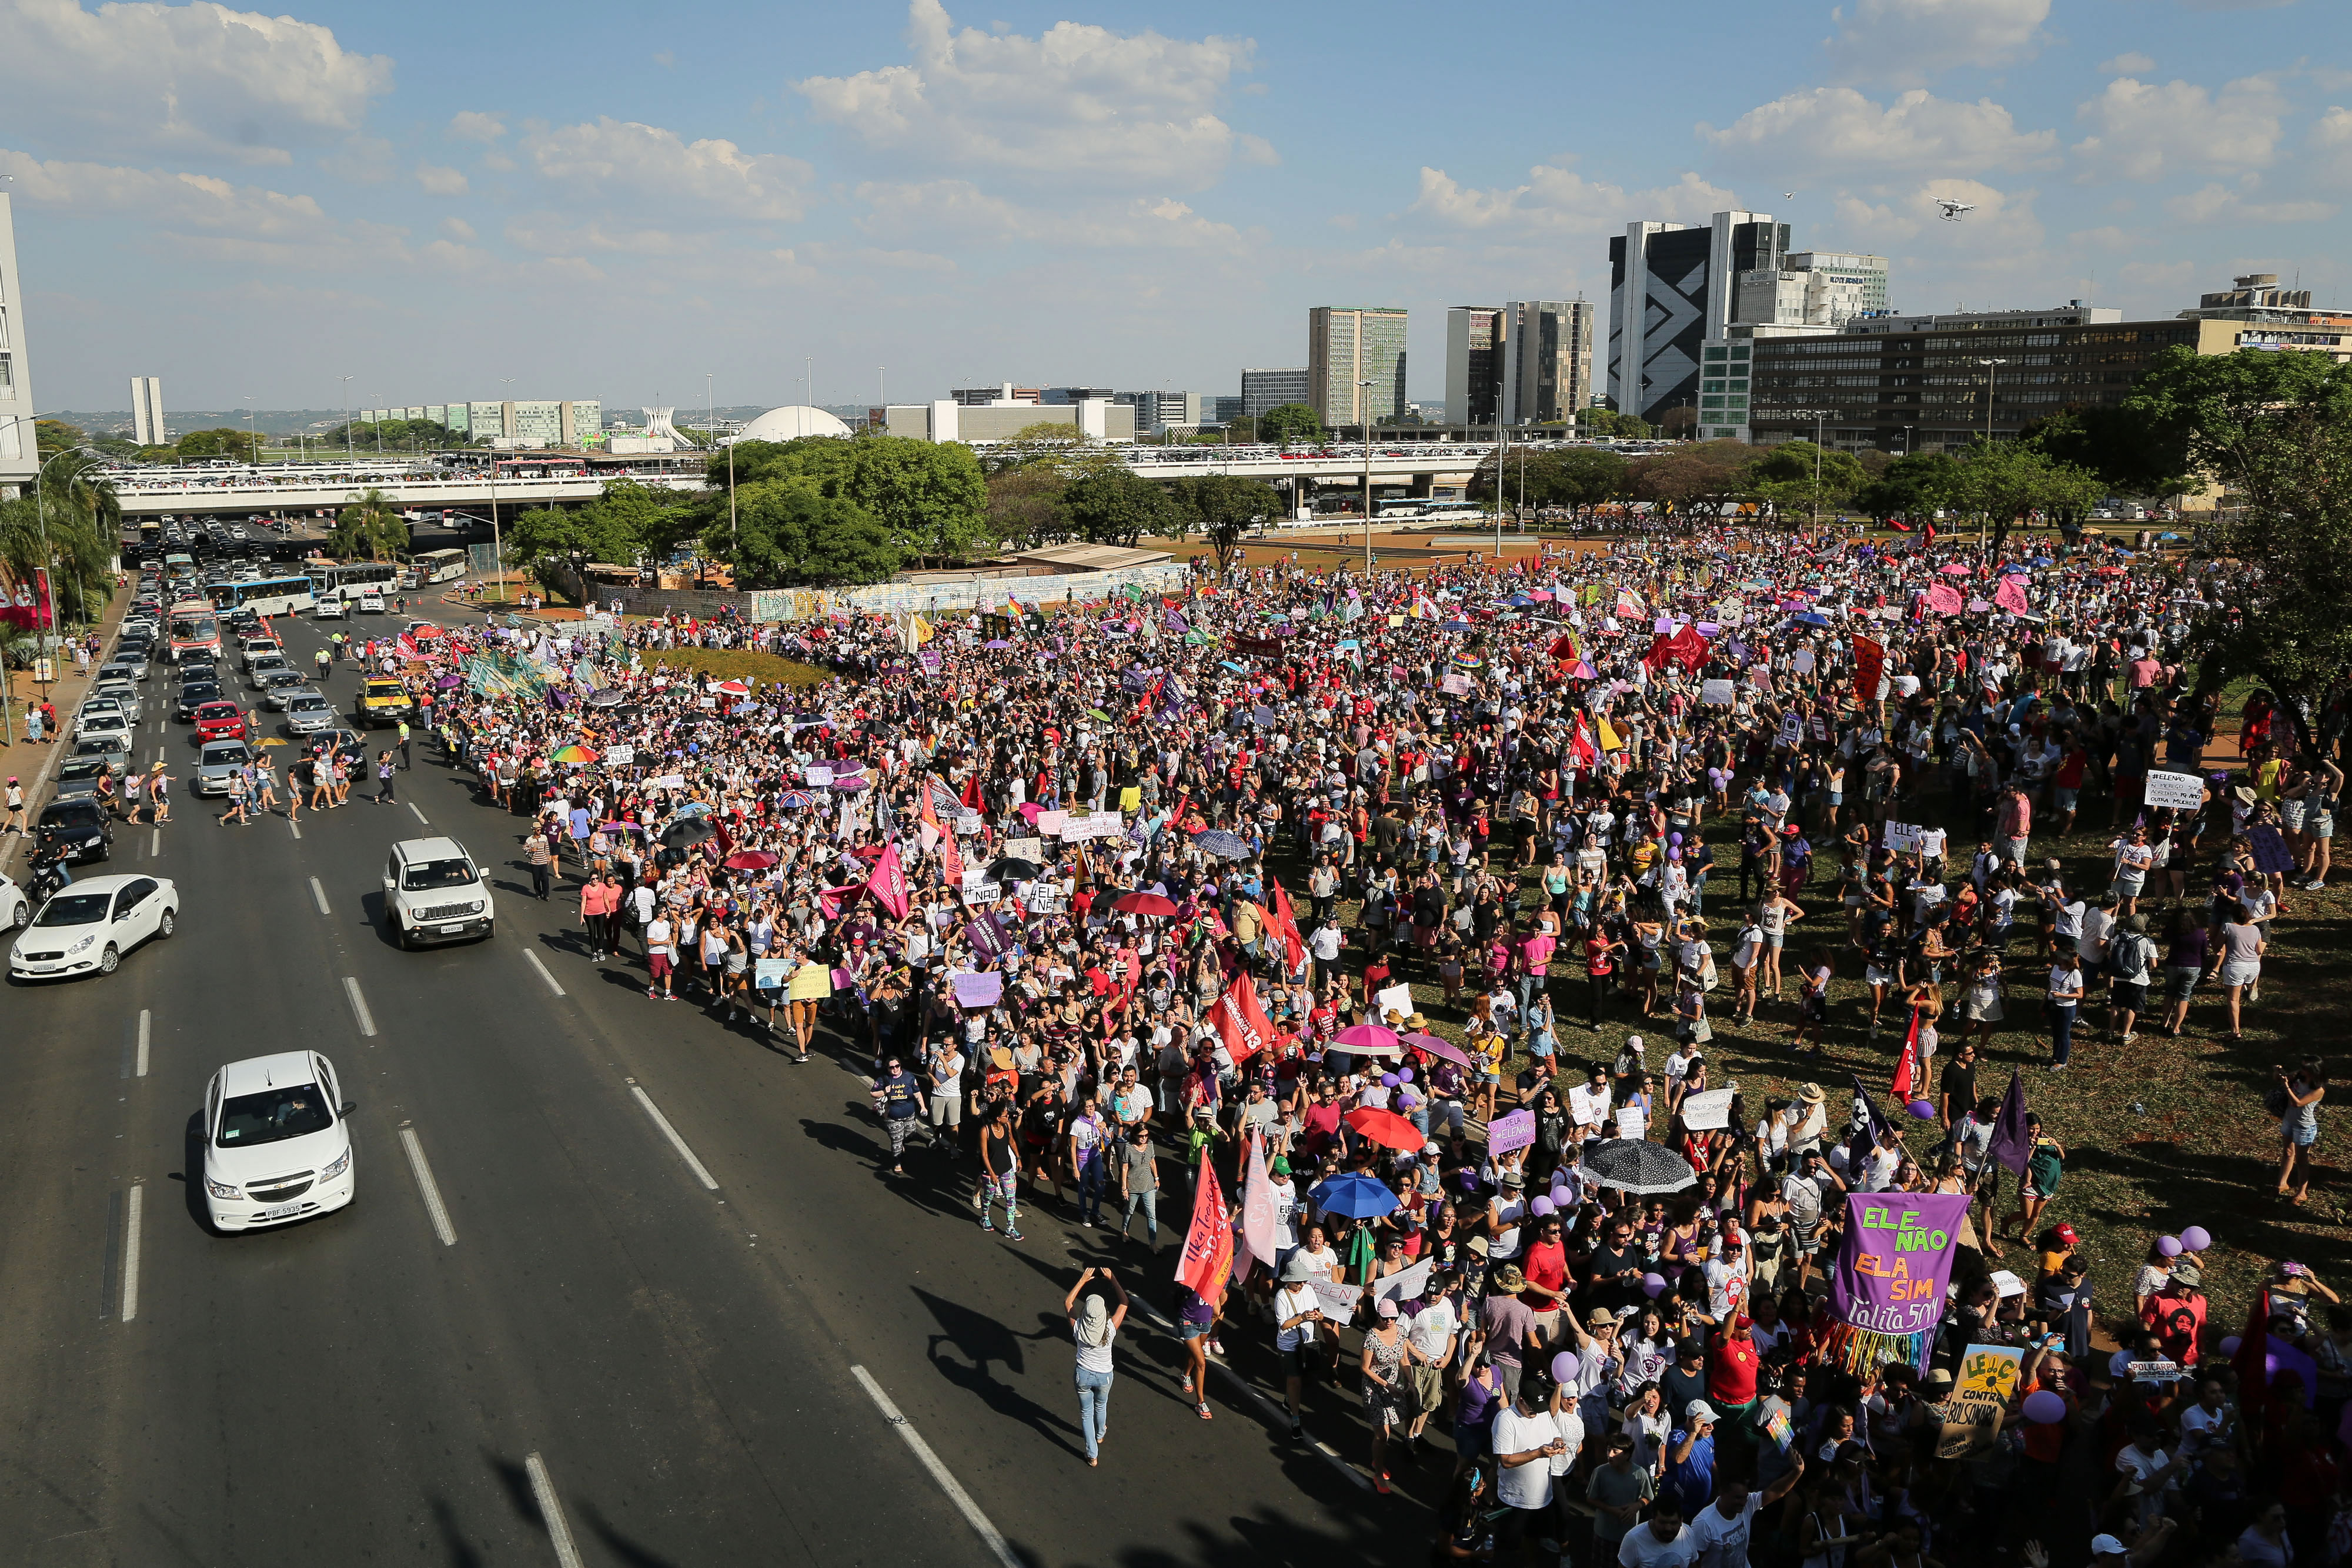 Demonstrators take part in a protest against Brazilian right-wing presidential candidate Jair Bolsonaro, called by a social media campaign under the hashtag #EleNao (Not Him), in Brasilia on September 29, 2018. - Women across Brazil launched a wave of nationwide protests on Saturday against the candidacy of the right-wing frontrunner in next week's presidential elections, Jair Bolsonaro who has been branded racist, misogynist and homophobic. (Photo by Sergio LIMA / AFP)